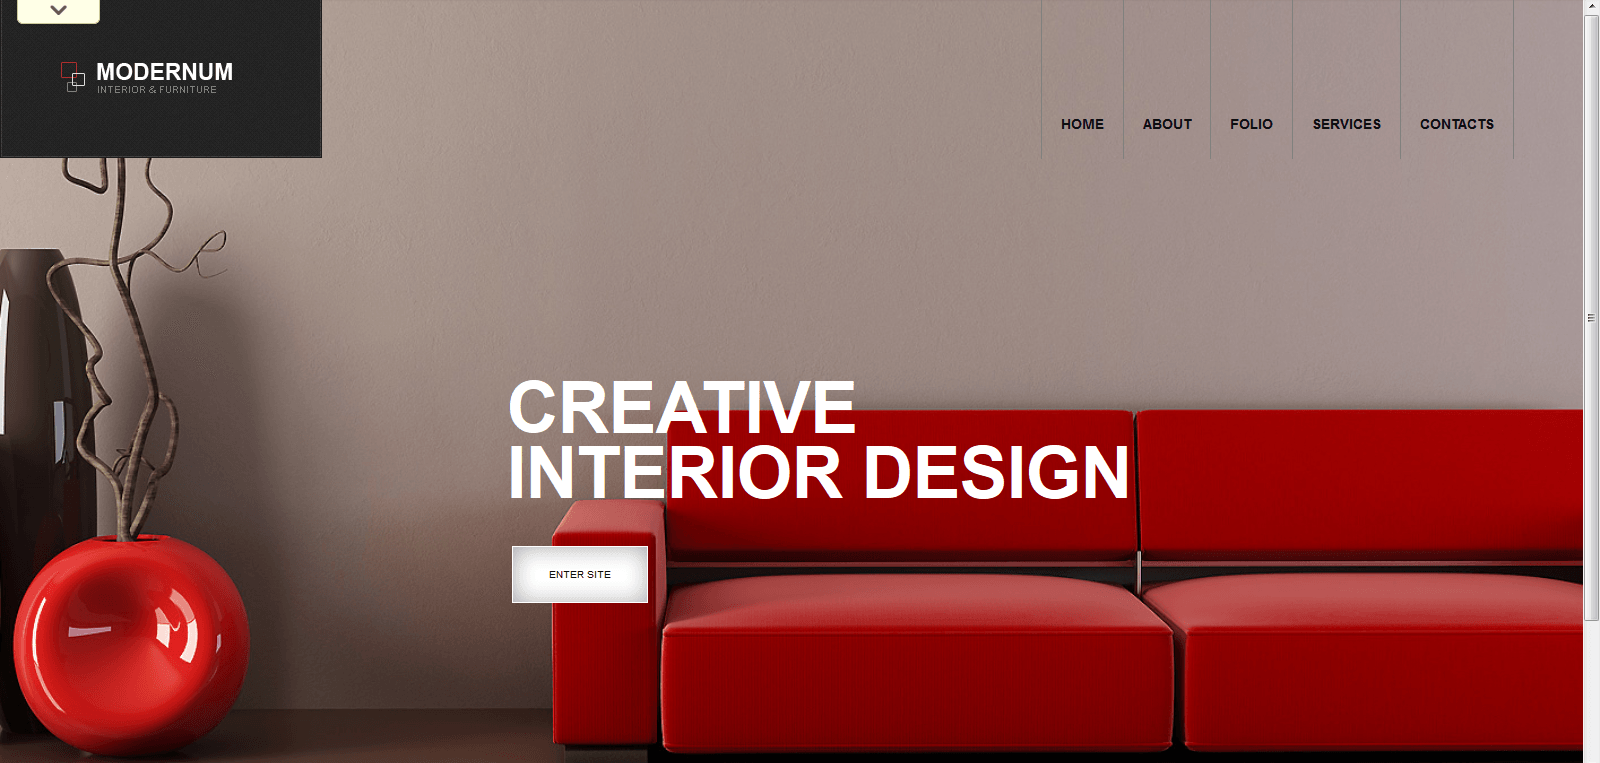 interior design portfolio websites trend home design and interior decorating sites home design